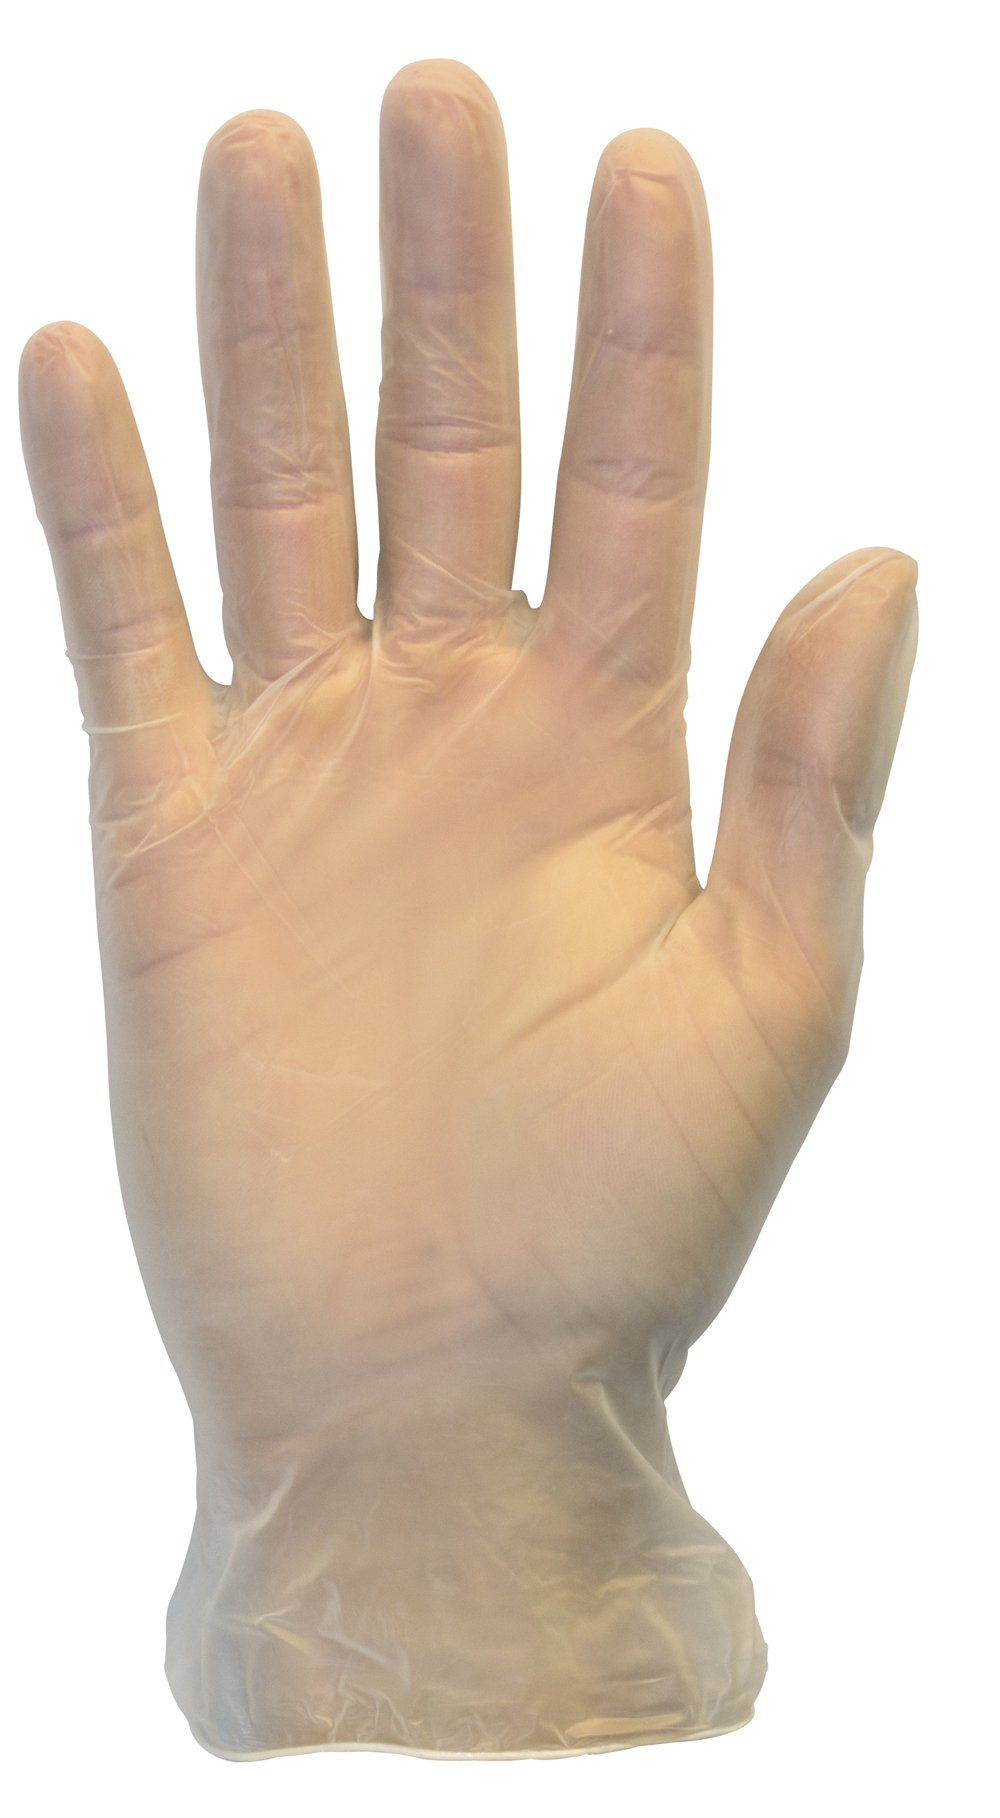 Disposable Vinyl Exam Gloves Clear Medical Grade